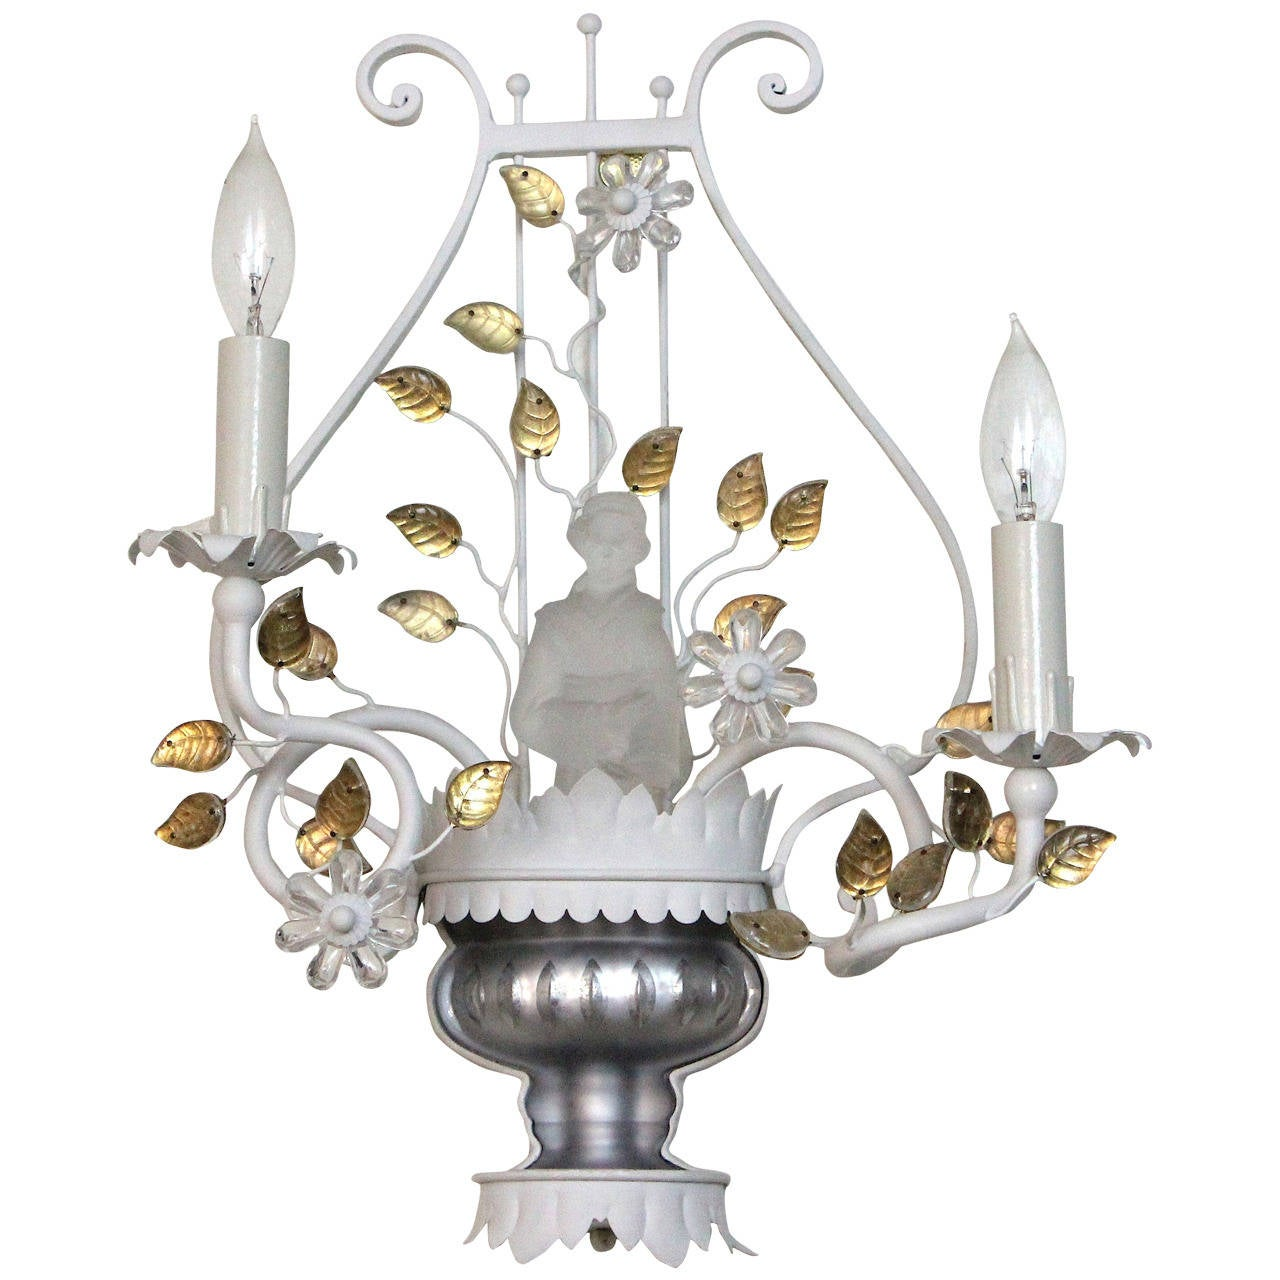 Sherle wagner unique chinoiserie tole light sconce from mar a lago sherle wagner unique chinoiserie tole light sconce from mar a lago palm beach for arubaitofo Choice Image